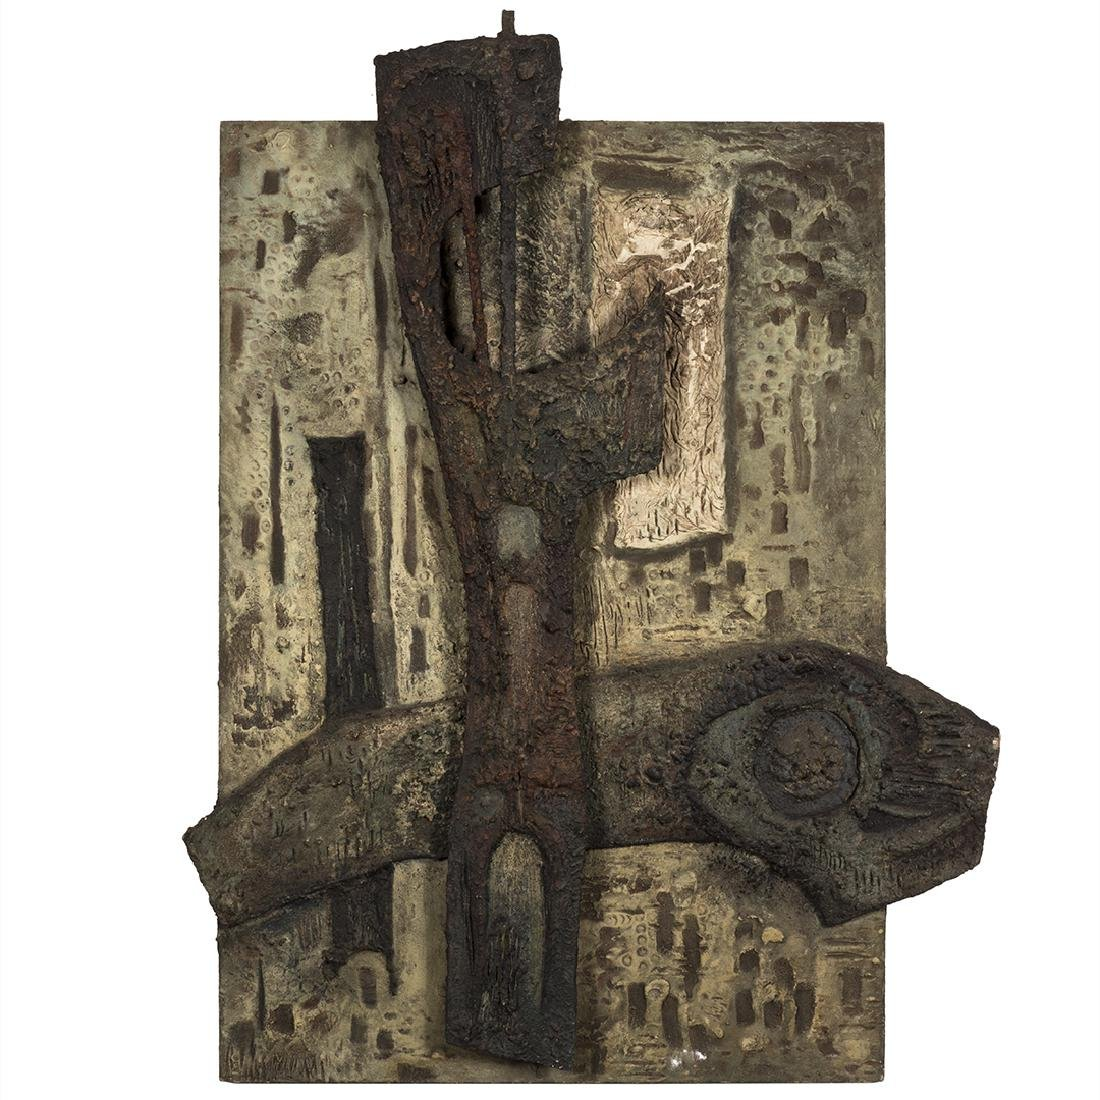 French Sculptural Abstract Panel